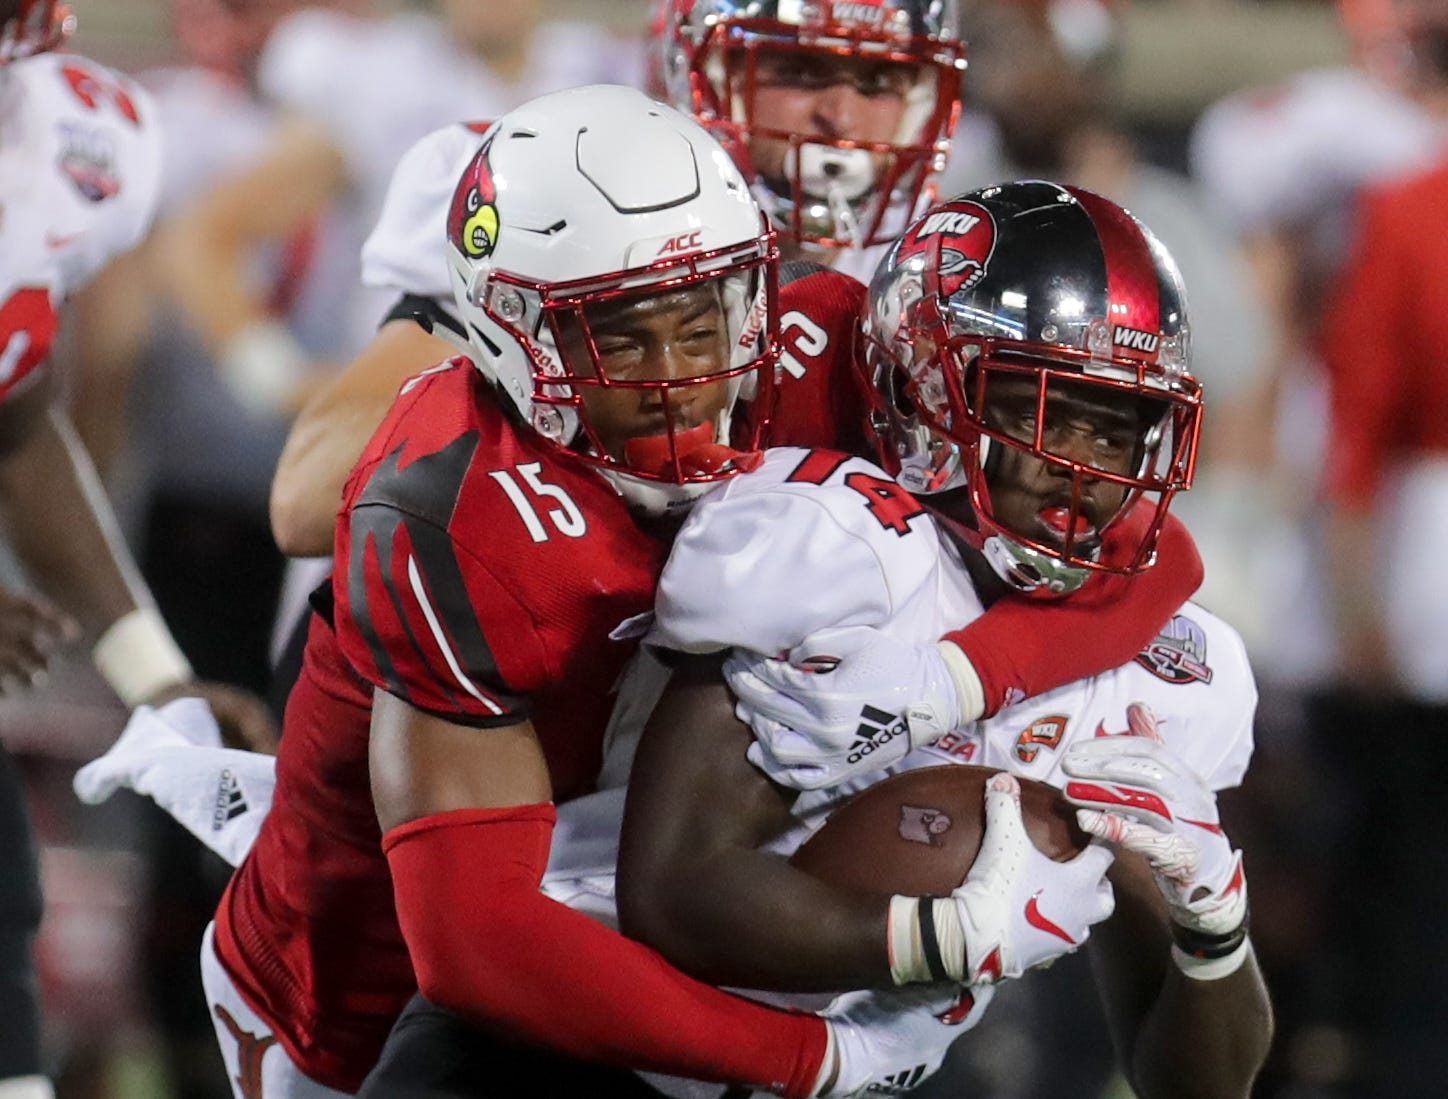 Louisville's Quen Head tackles WKU's Garland LaFrance for a loss. 